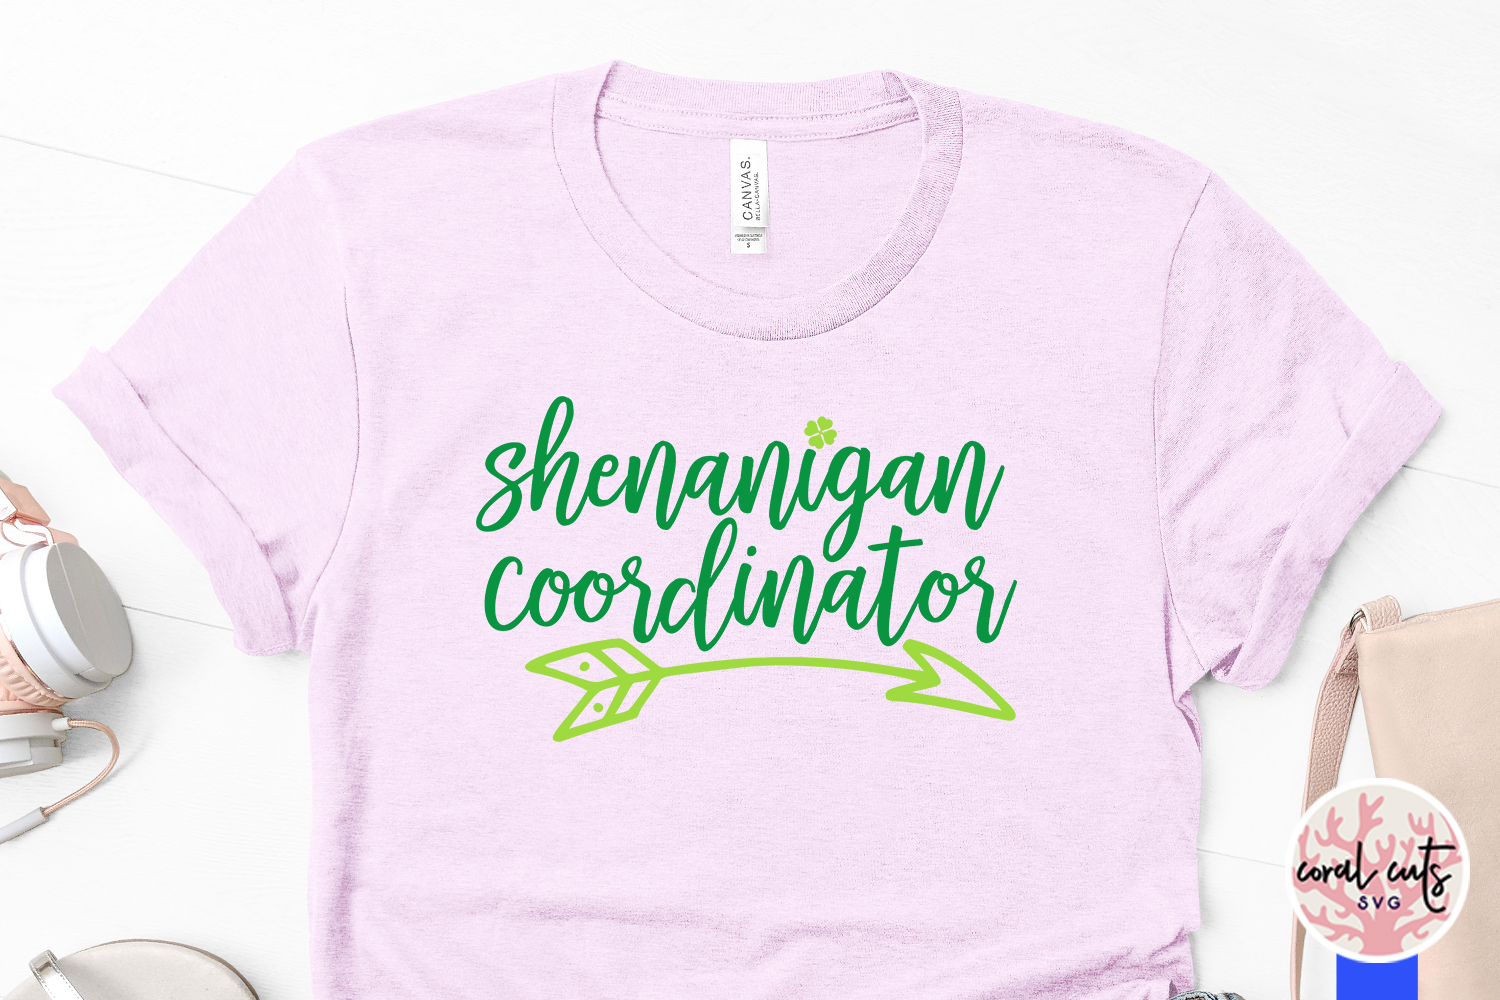 Shenanigan coordinator - St. Patrick's Day SVG EPS DXF PNG example image 3